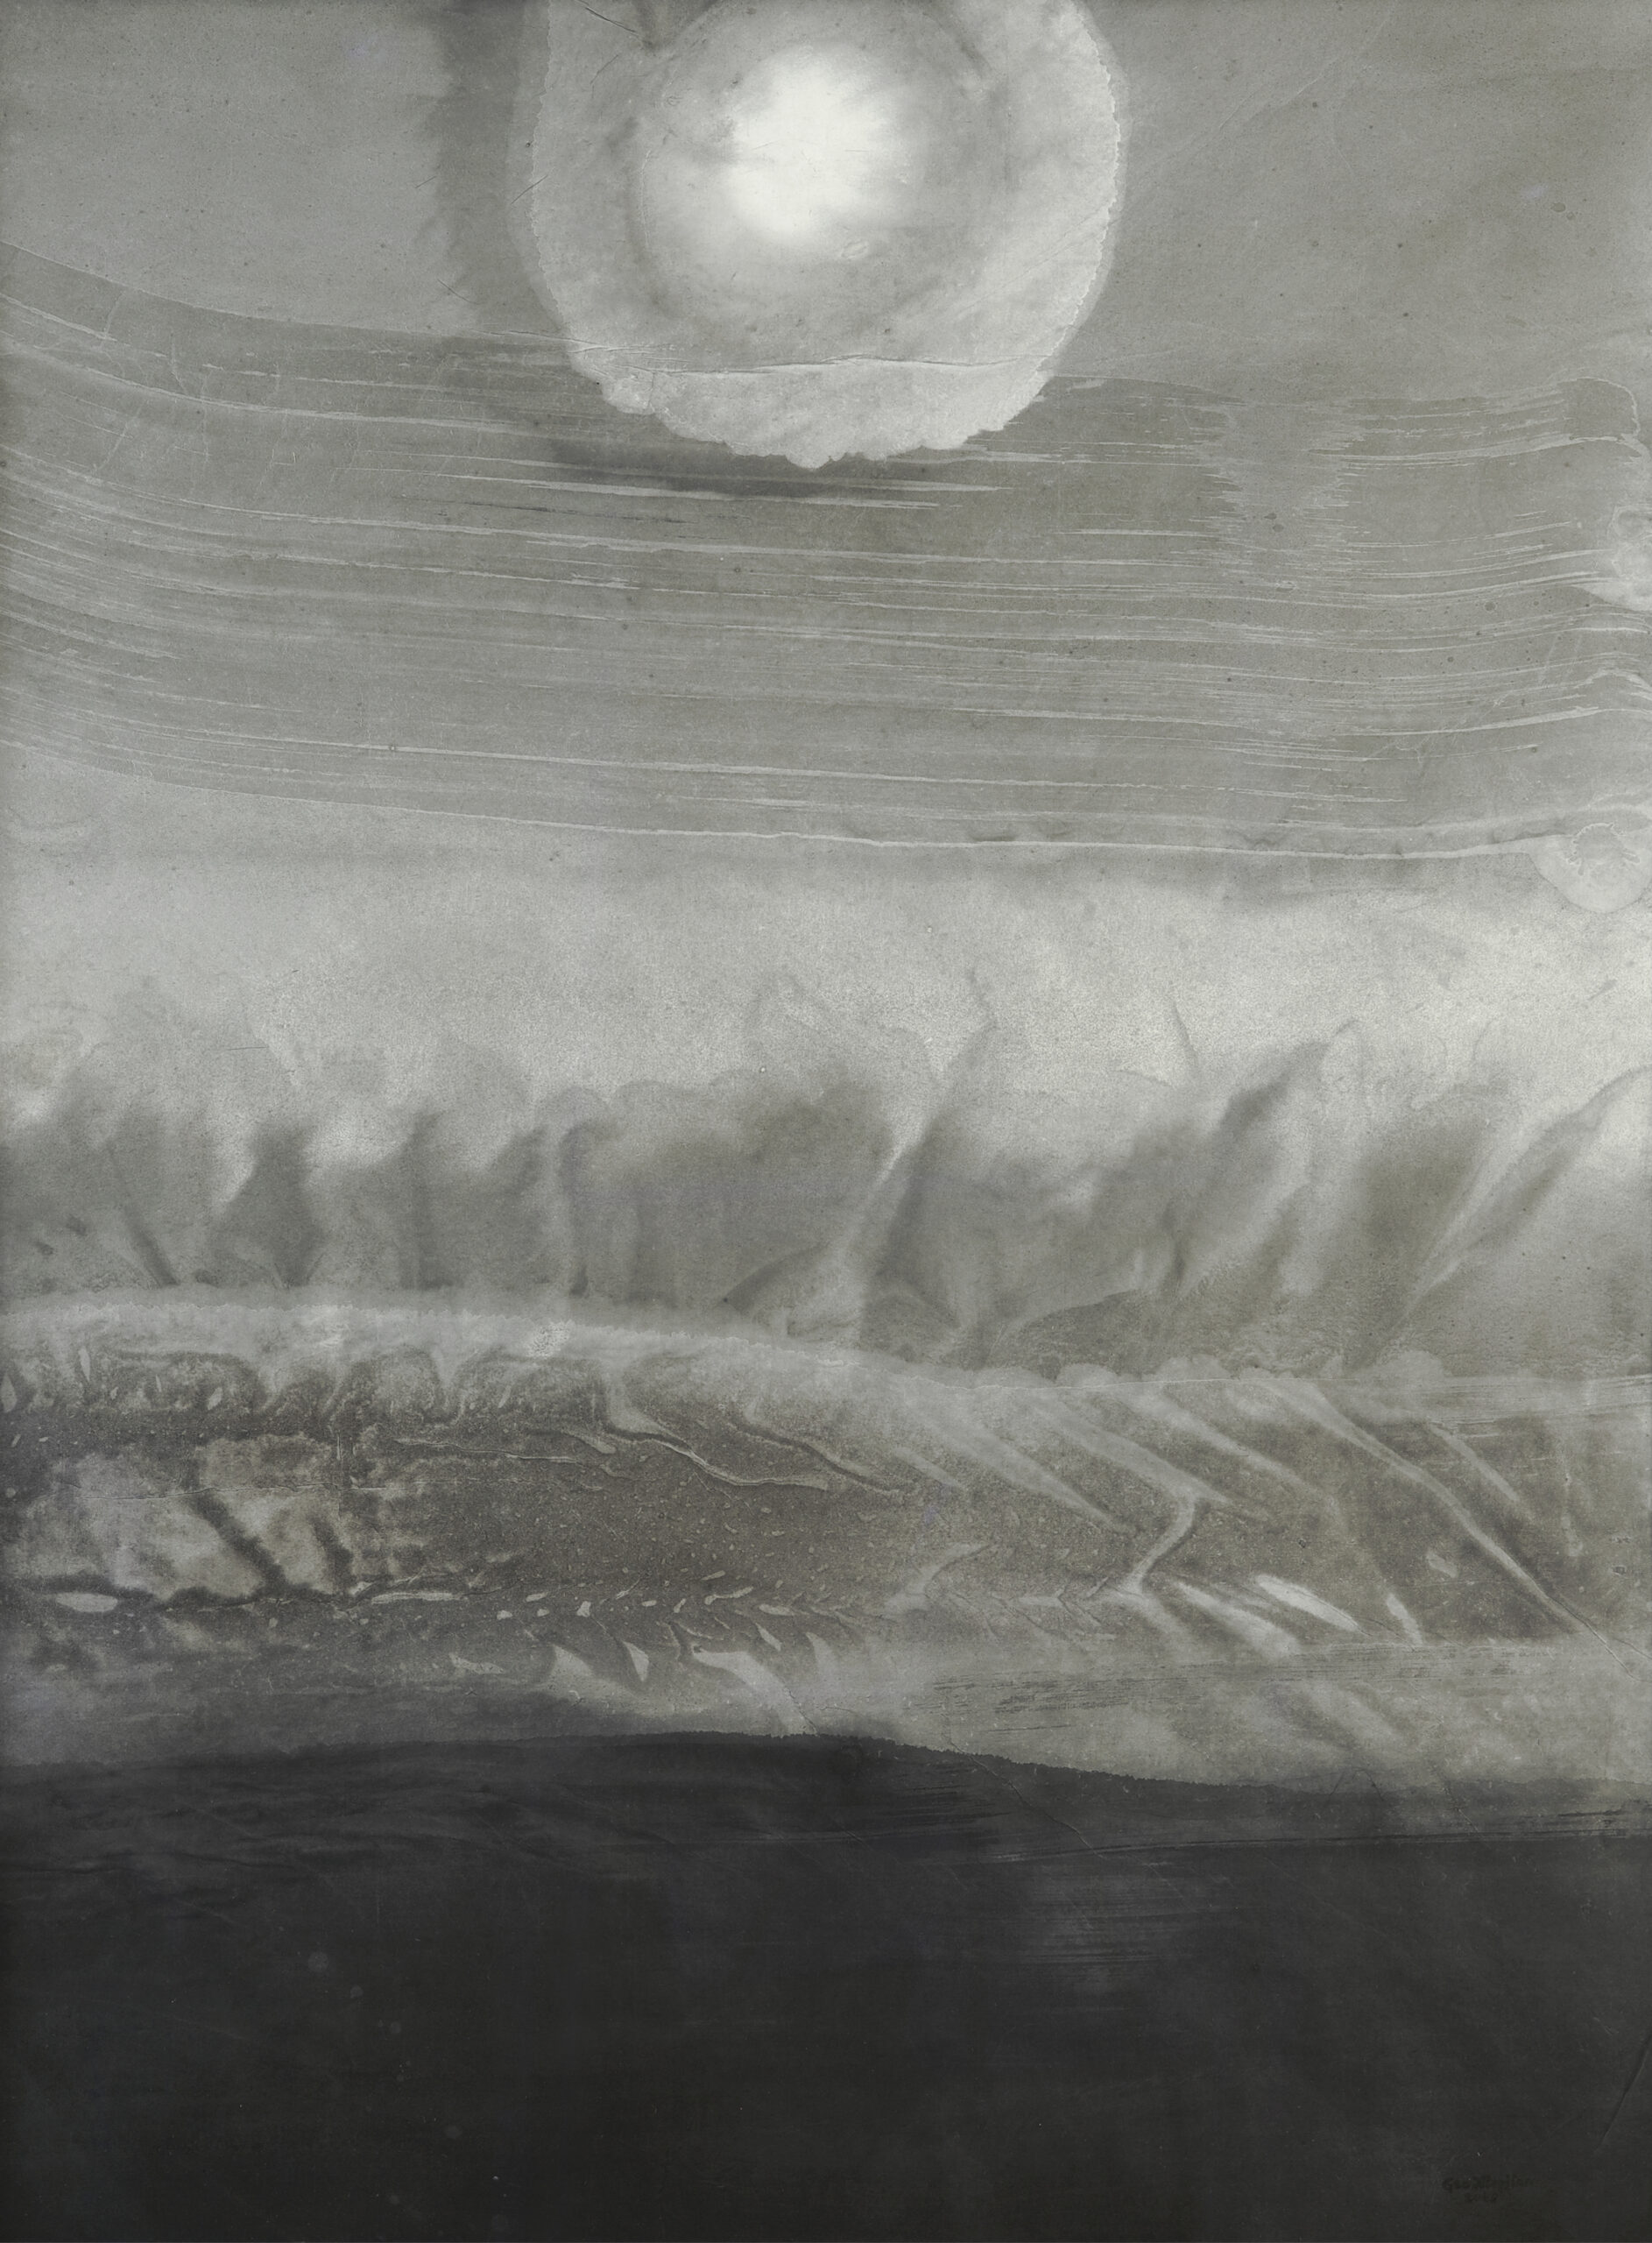 Gao Xingjian Midnight, 2013 Signed lower right Ink on paper 50 x 38 1/8 inches 127 x 97 cm